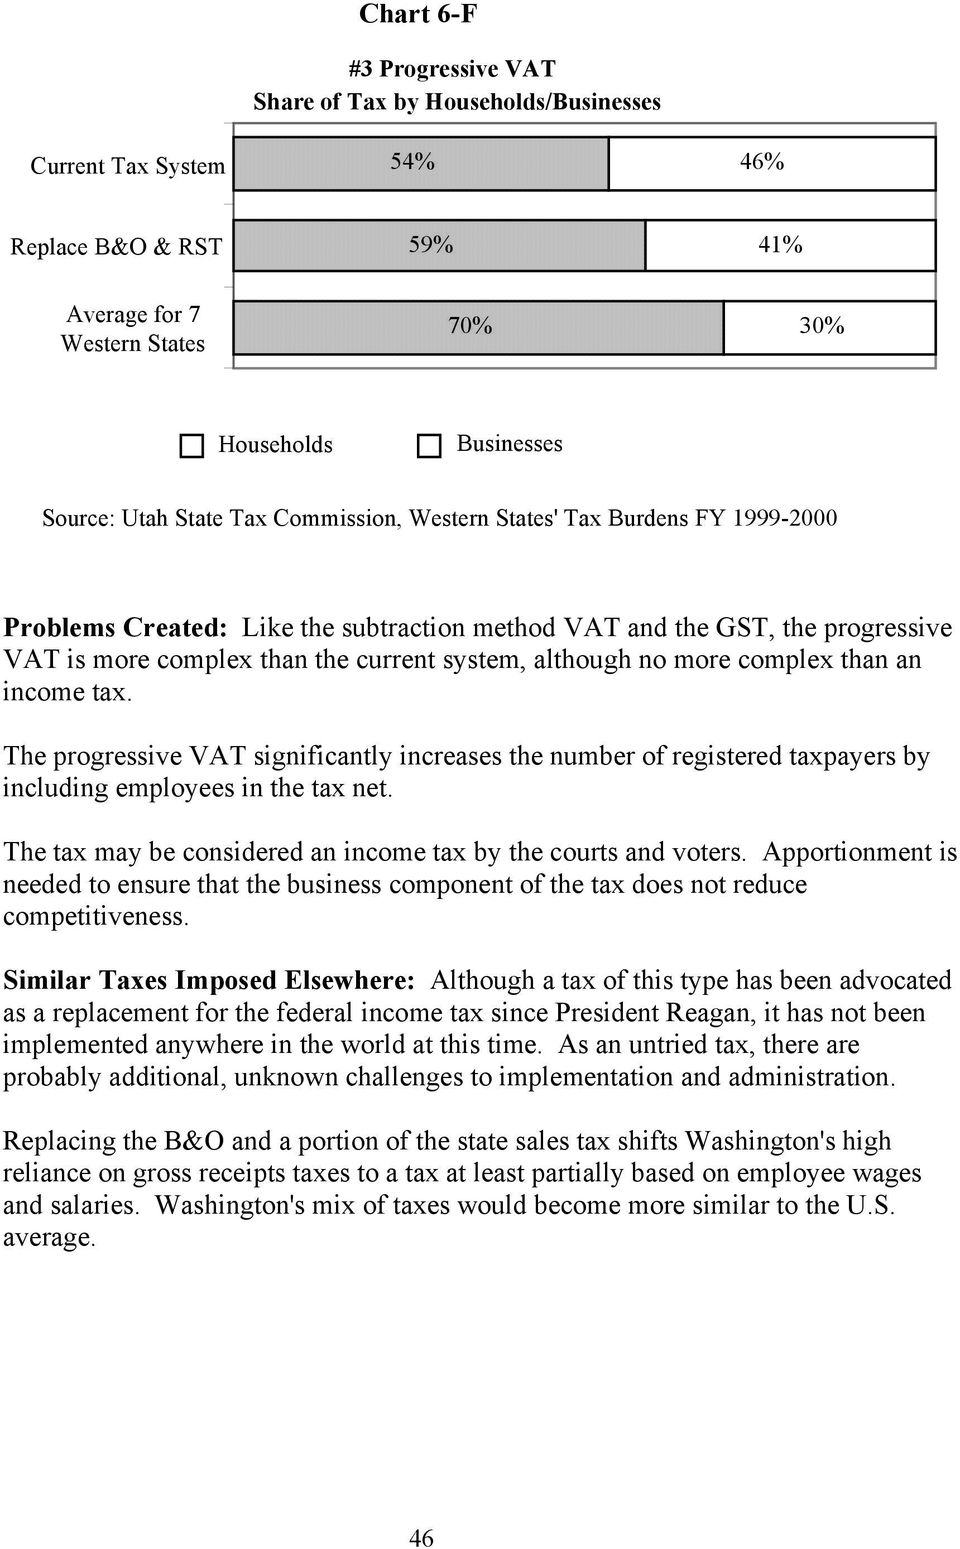 complex than an income tax. The progressive VAT significantly increases the number of registered taxpayers by including employees in the tax net.